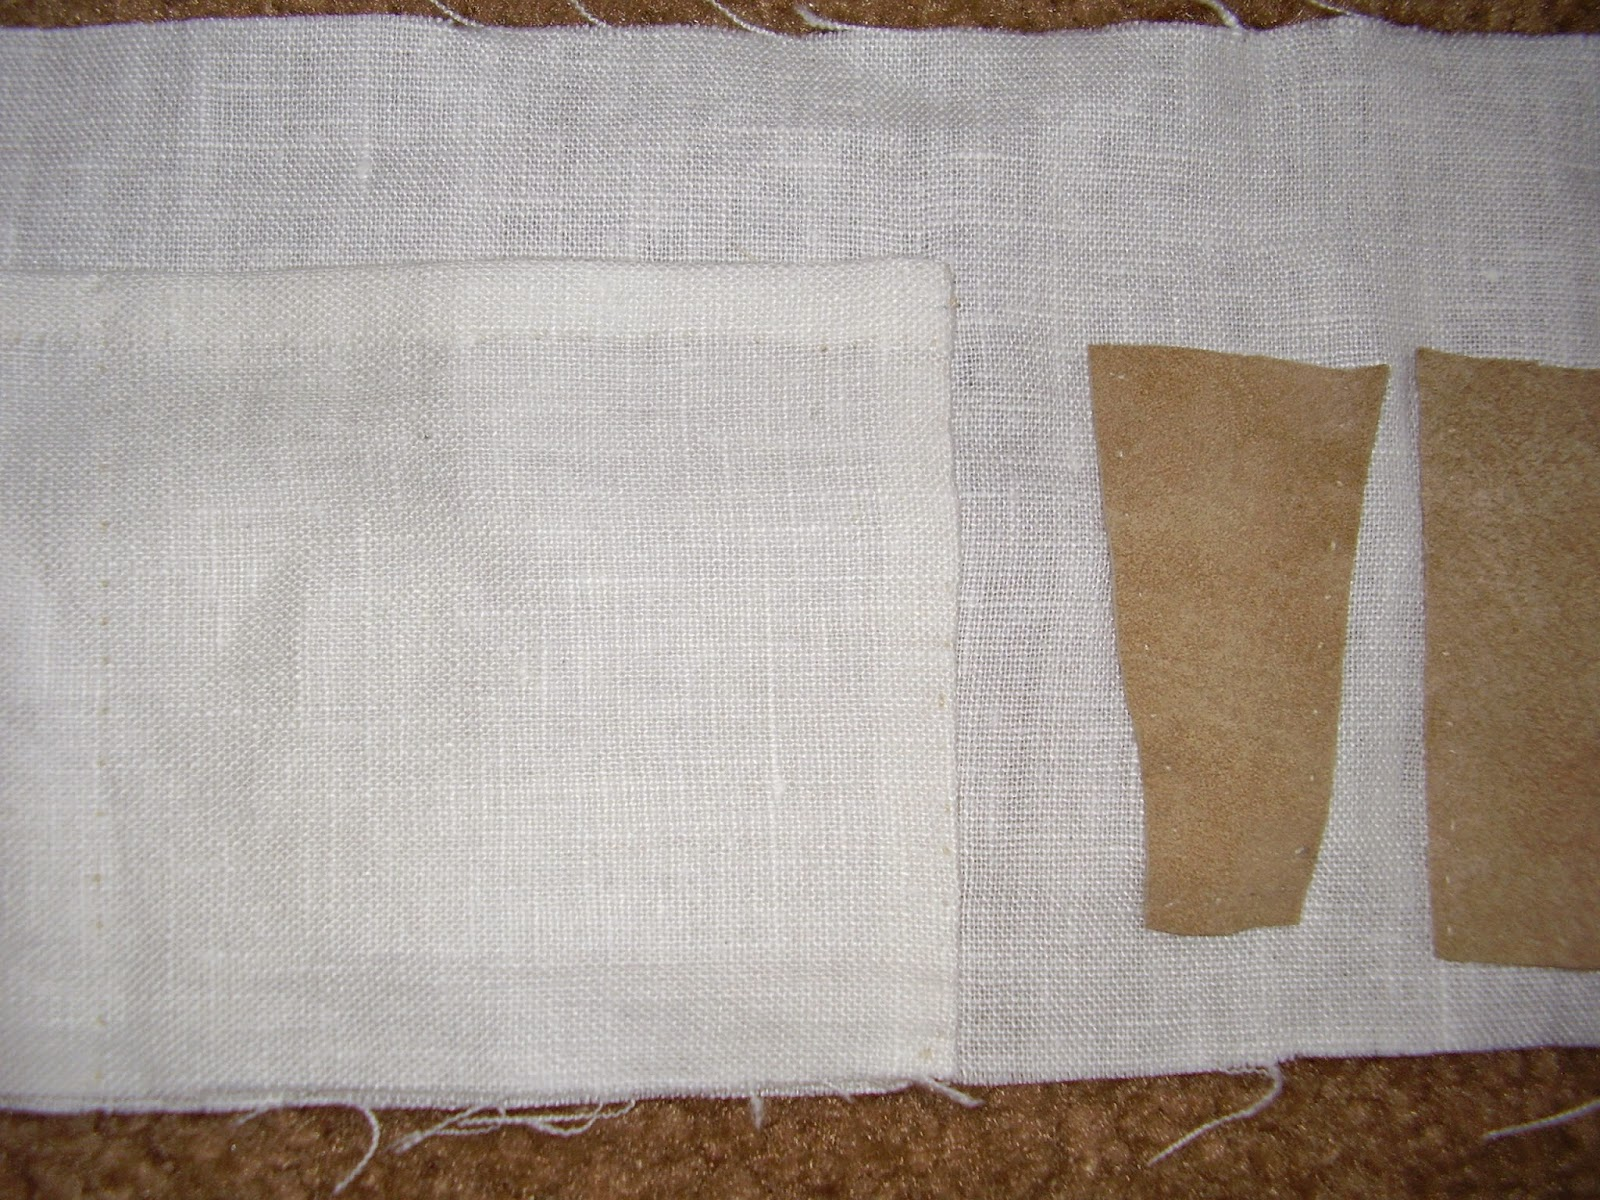 Pockets in workbasket lining.